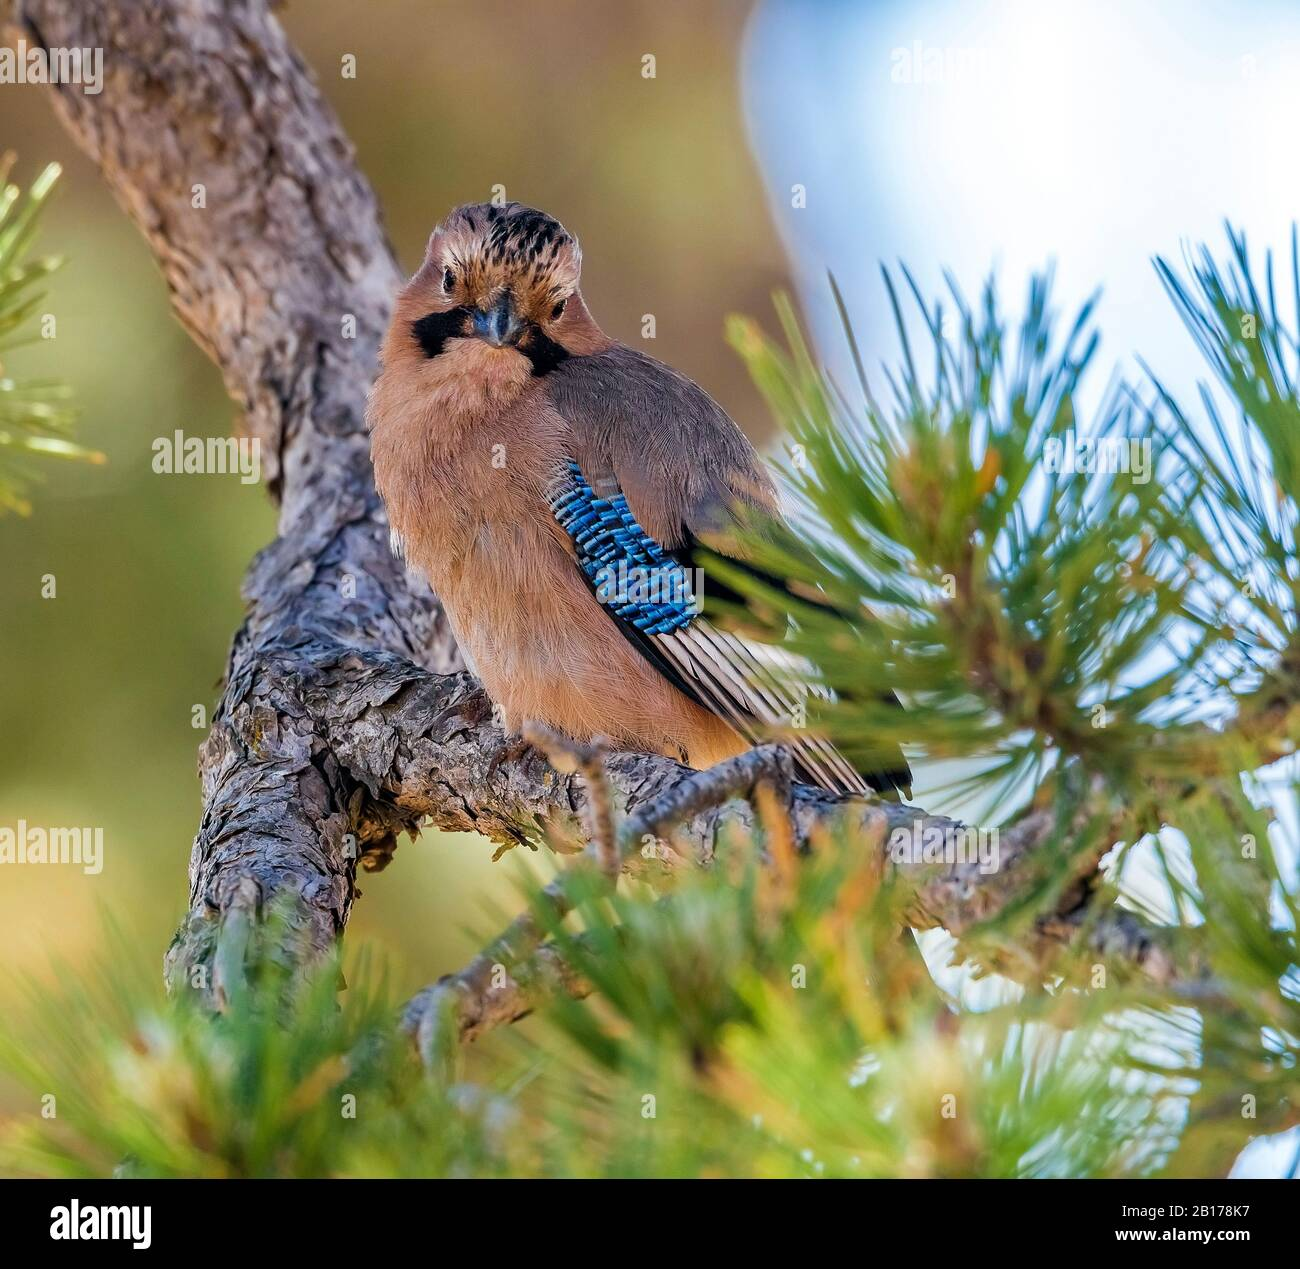 Cyprus Jay (Garrulus glandarius glaszneri), sitting on a branch, Cyprus, Limassol Stock Photo